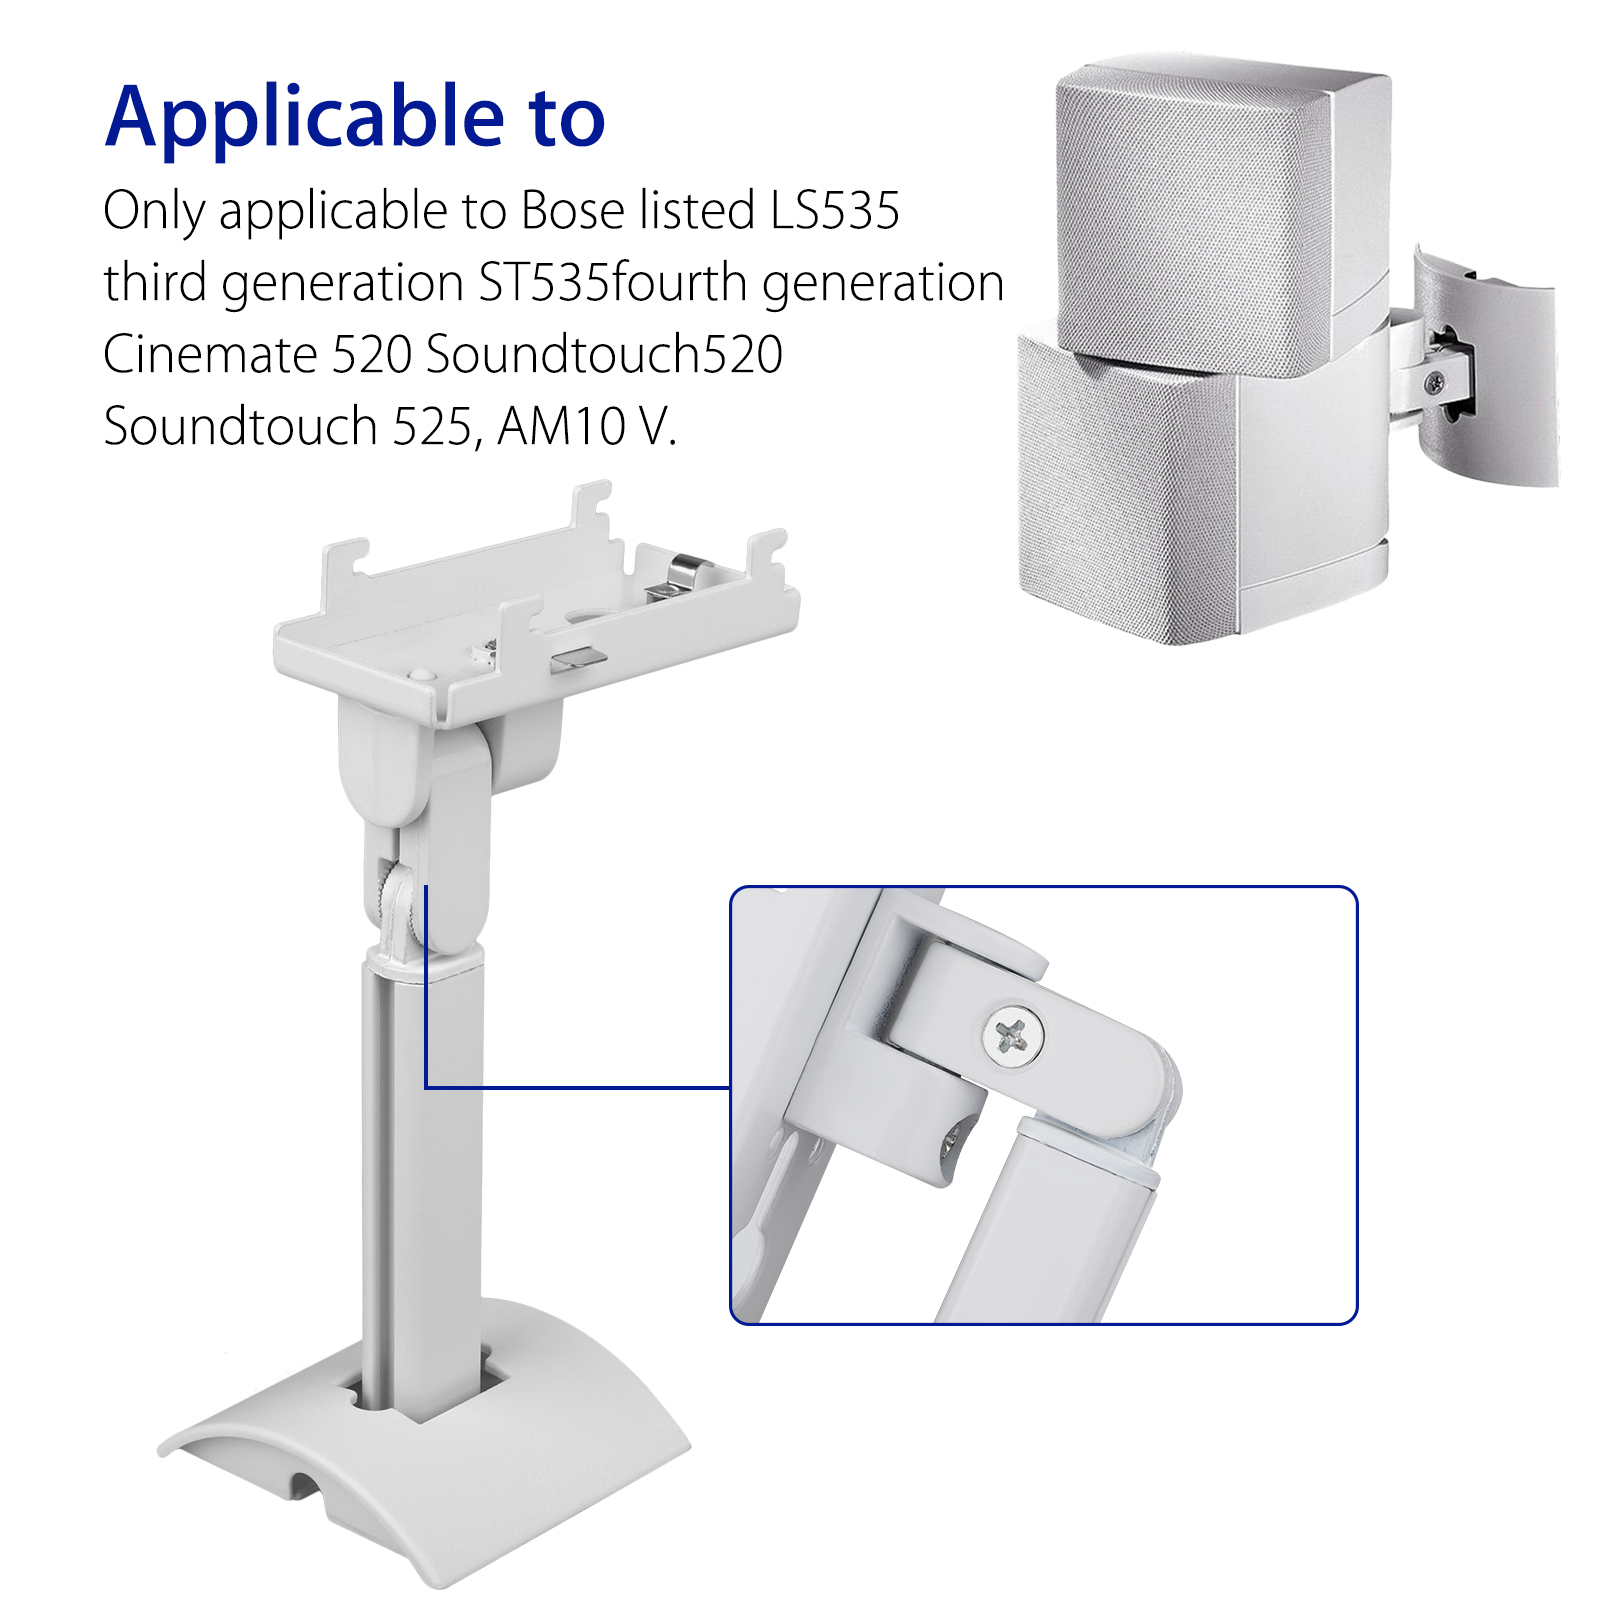 UB20-SERIES2-II-Wall-Ceiling-Bracket-Mount-for-Bose-all-Lifestyle-CineMate-White thumbnail 12